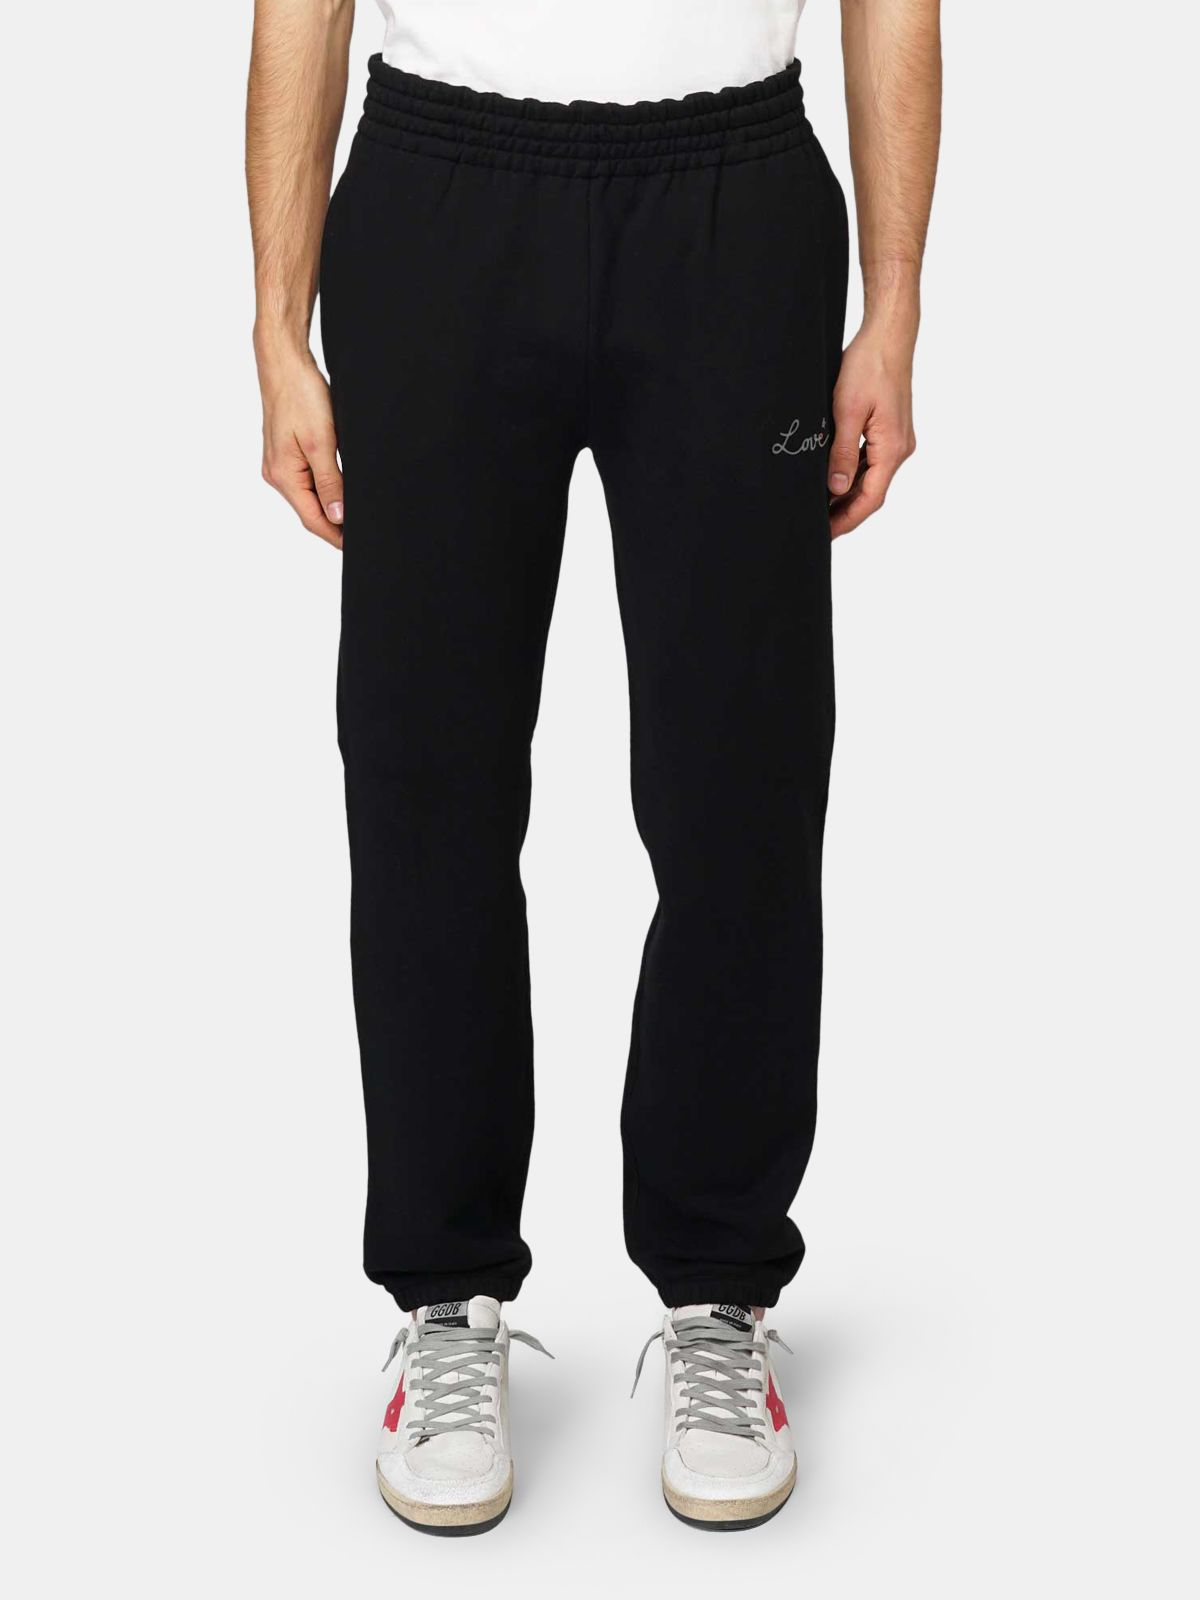 Golden Goose - Black Hamm joggers with Love embroidery in